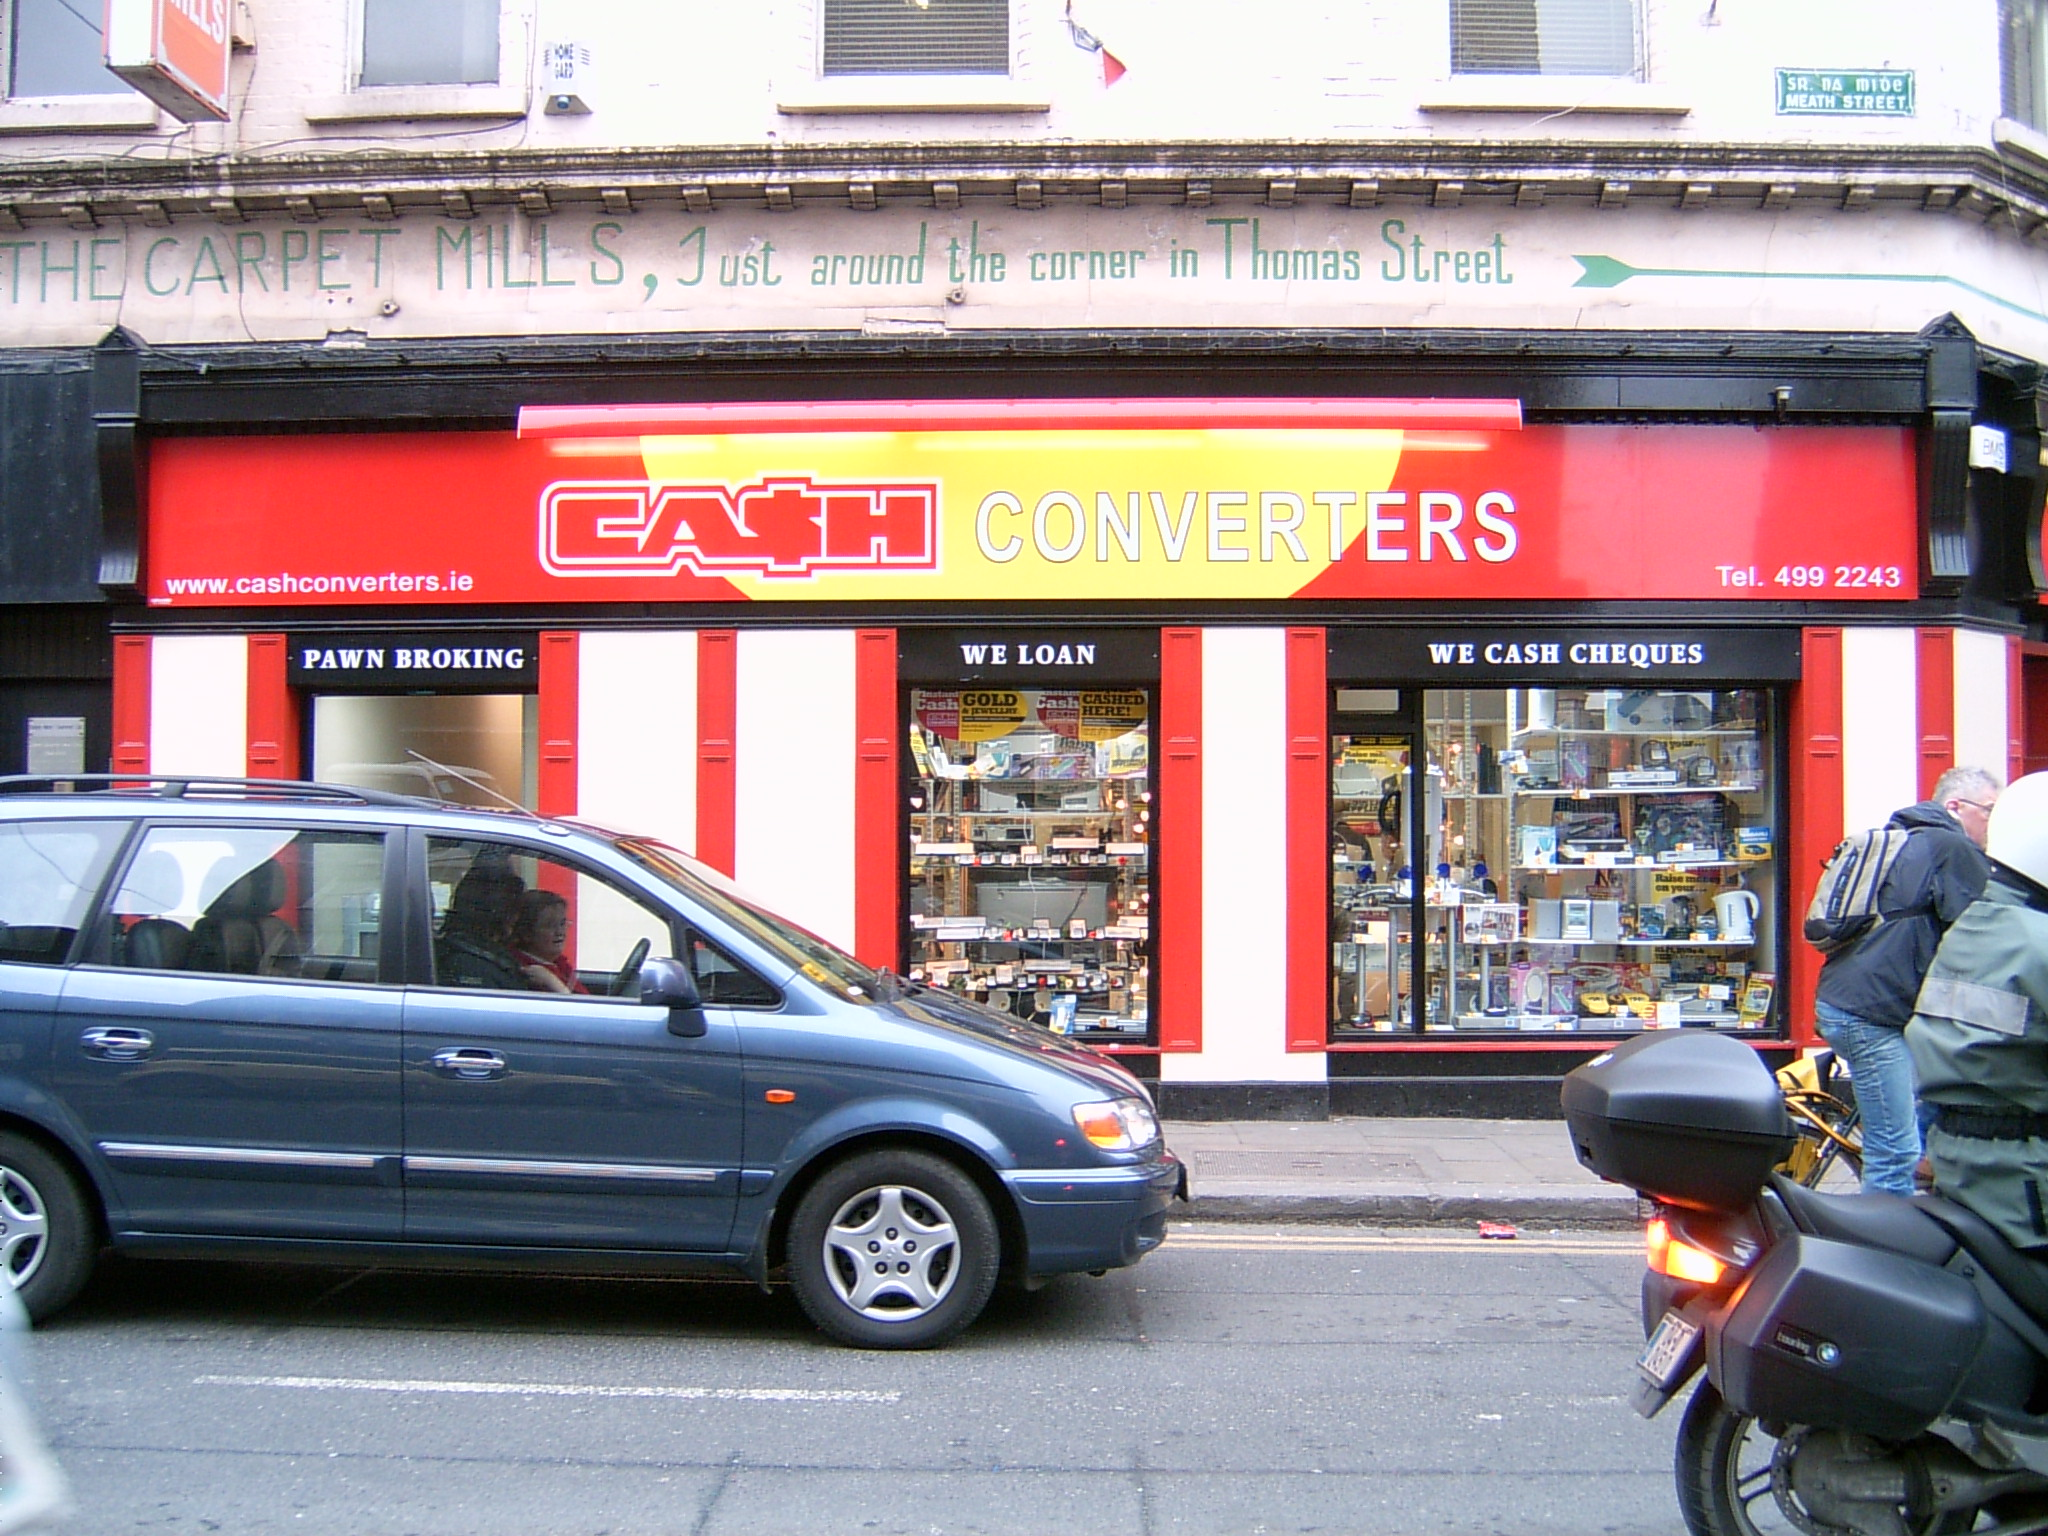 Flat Calander Vinyl Shop Front_3 Colours Red, Yellow & White